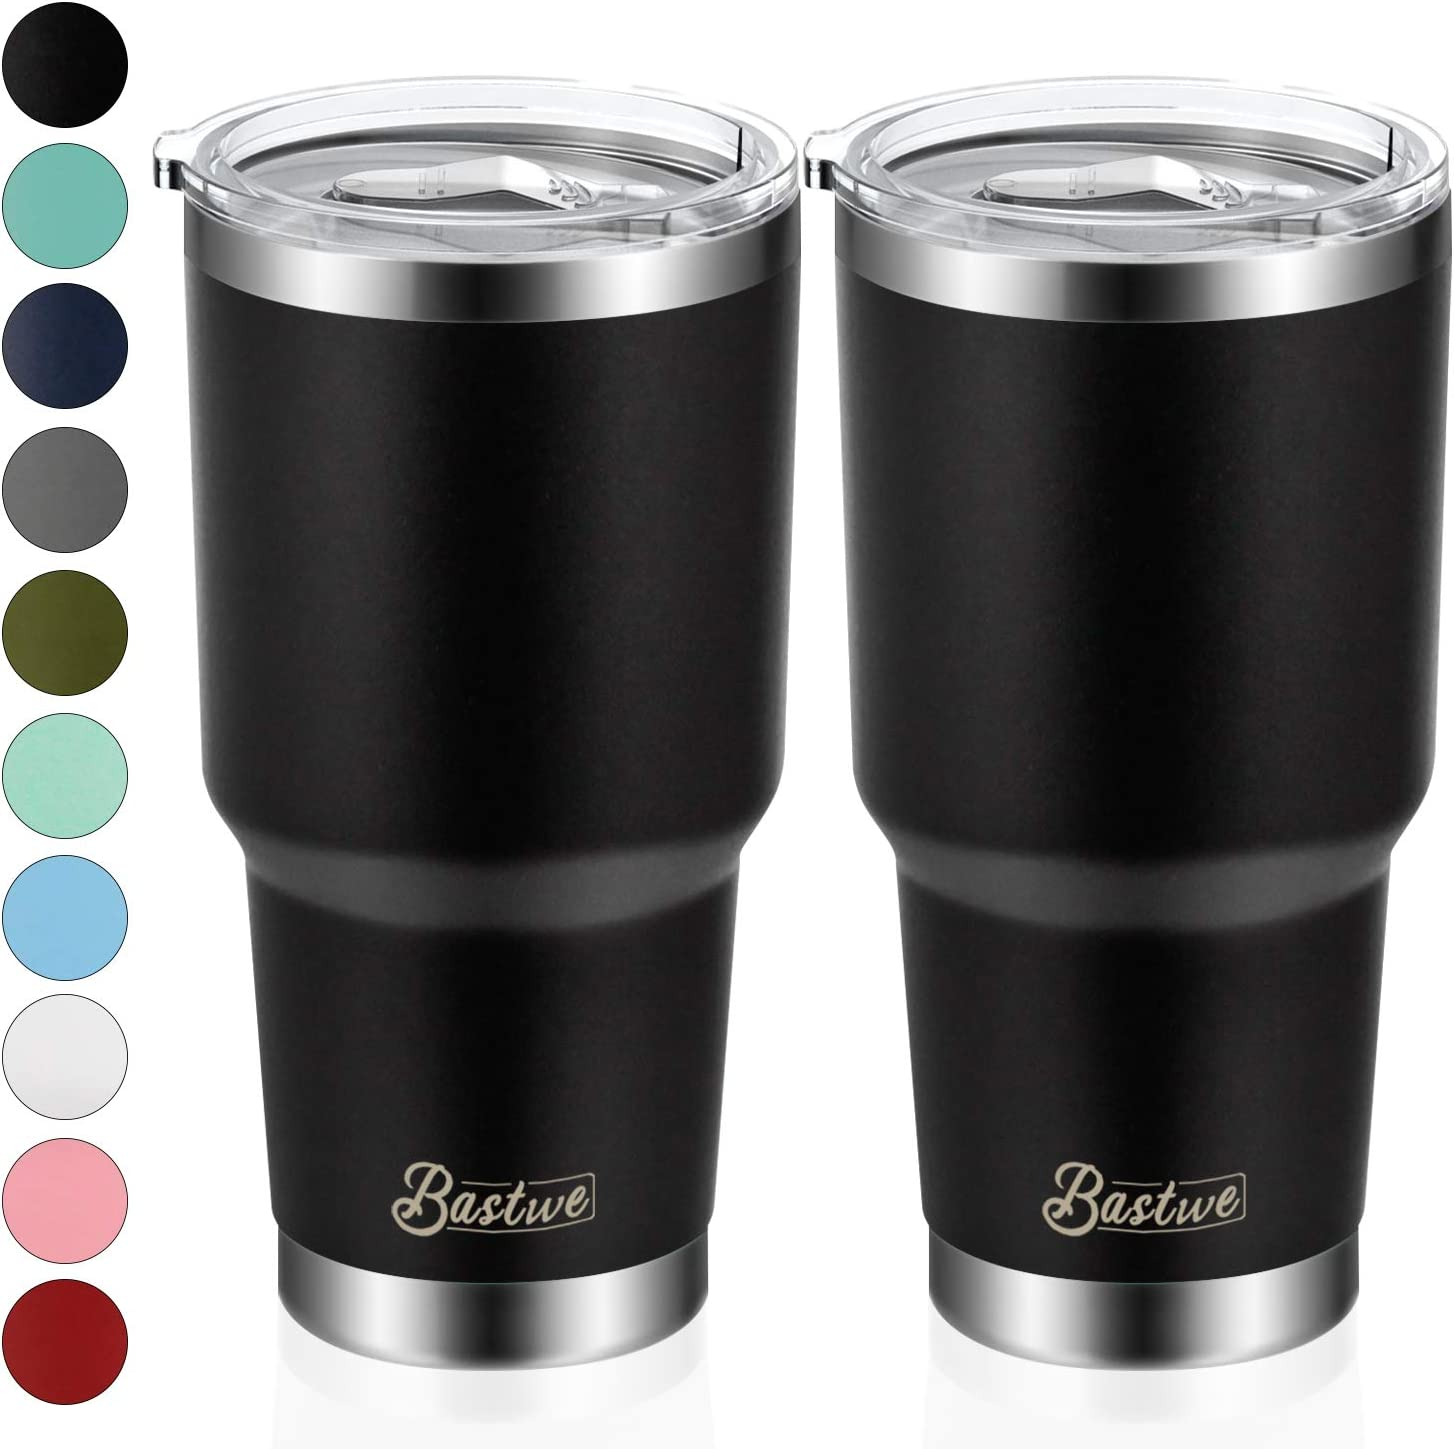 2 Pack 30oz Vacuum Insulated Tumblers, Bastwe Double Wall Stainless Steel Travel Mug with Lid and Straw for Home, Office, School, Works Great for Ice Drink, Hot Beverage (Black)